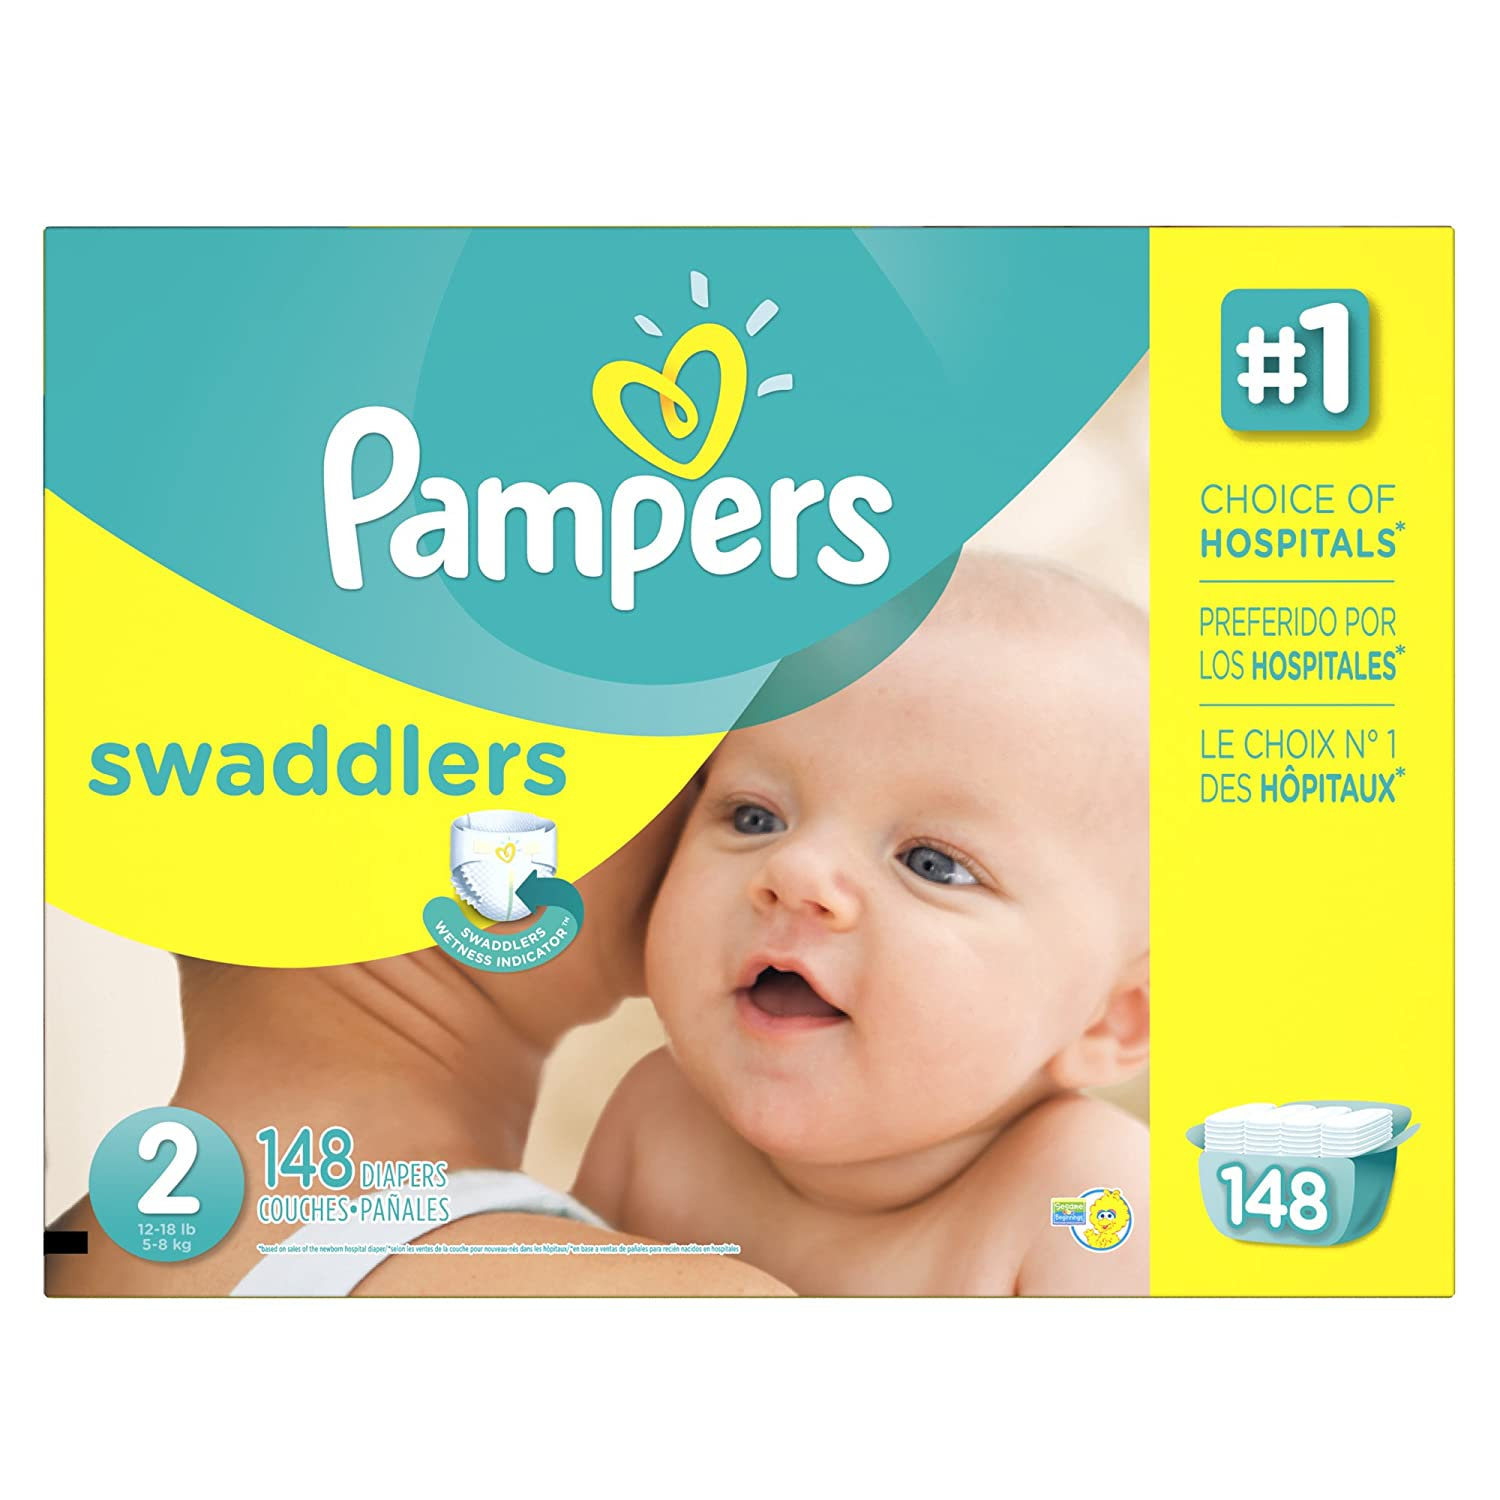 Pampers Swaddlers Disposable Diapers Size 2, 148 Count, ECONOMY SYNCHKG051588